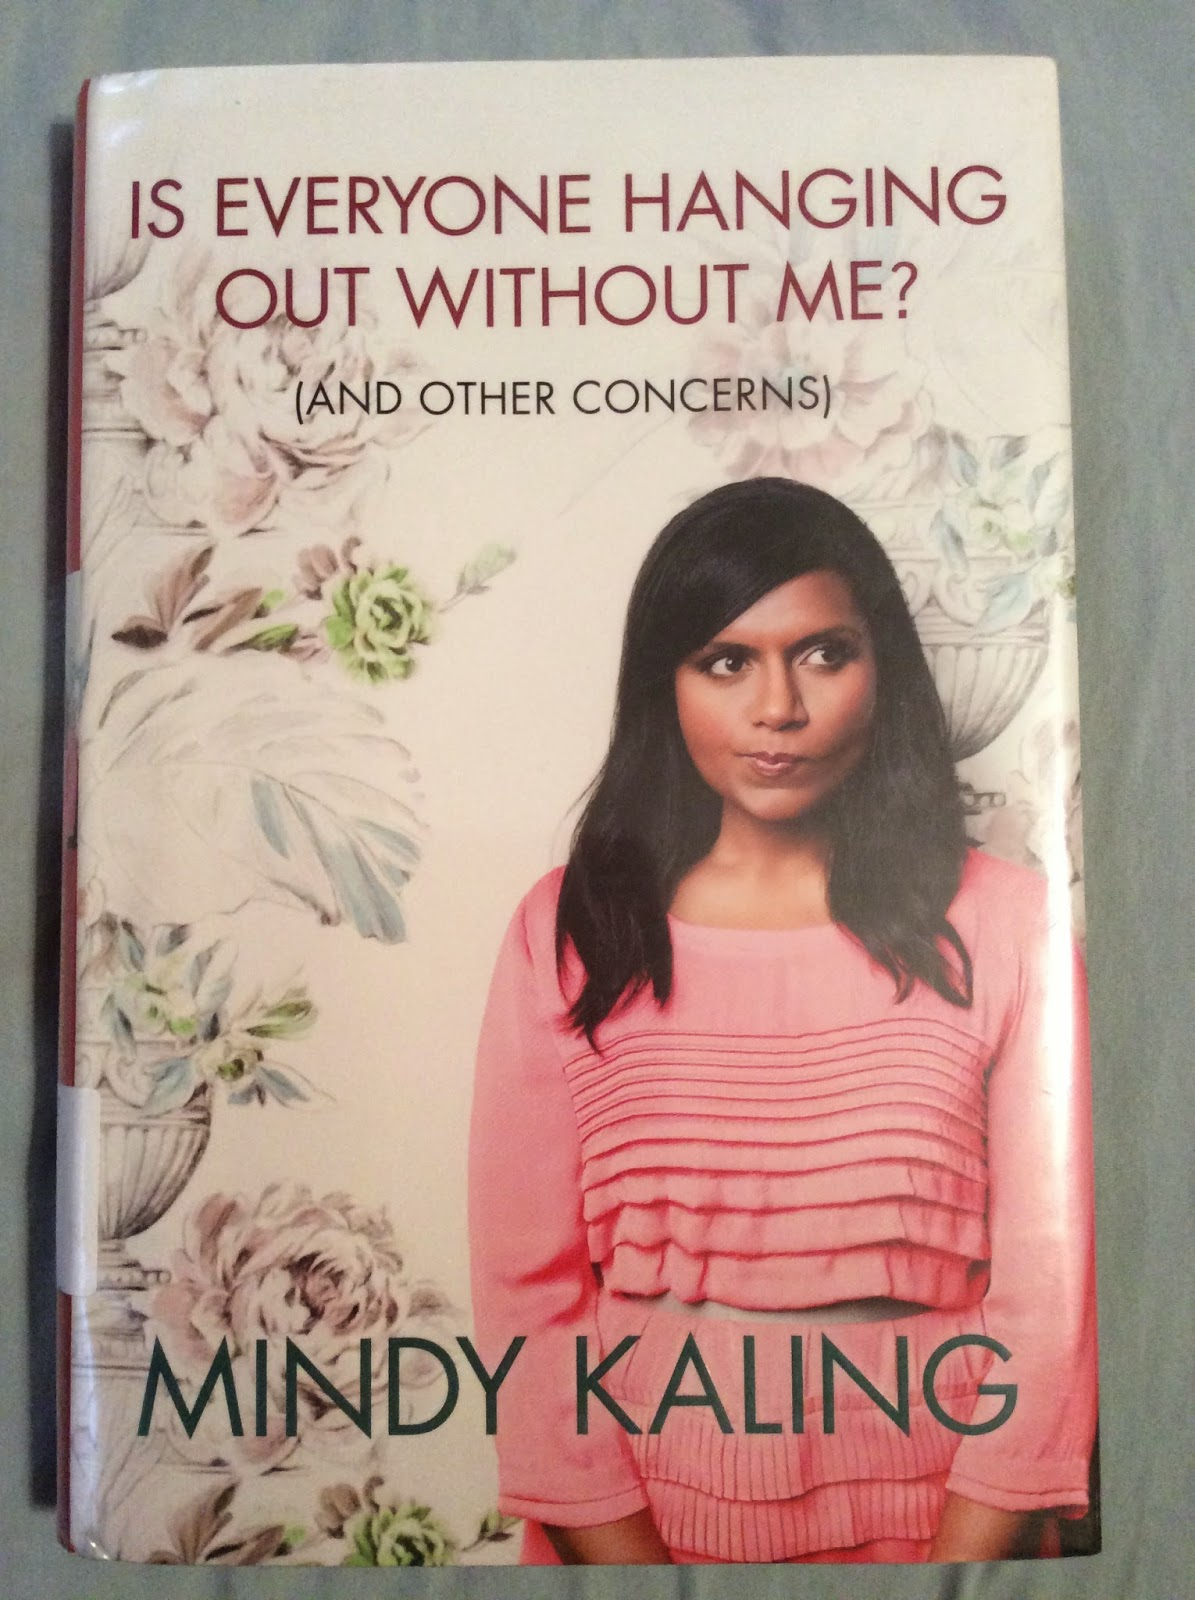 Spry On The Wall Book Review Is Everyone Hanging Out Without Me By Mindy Kaling